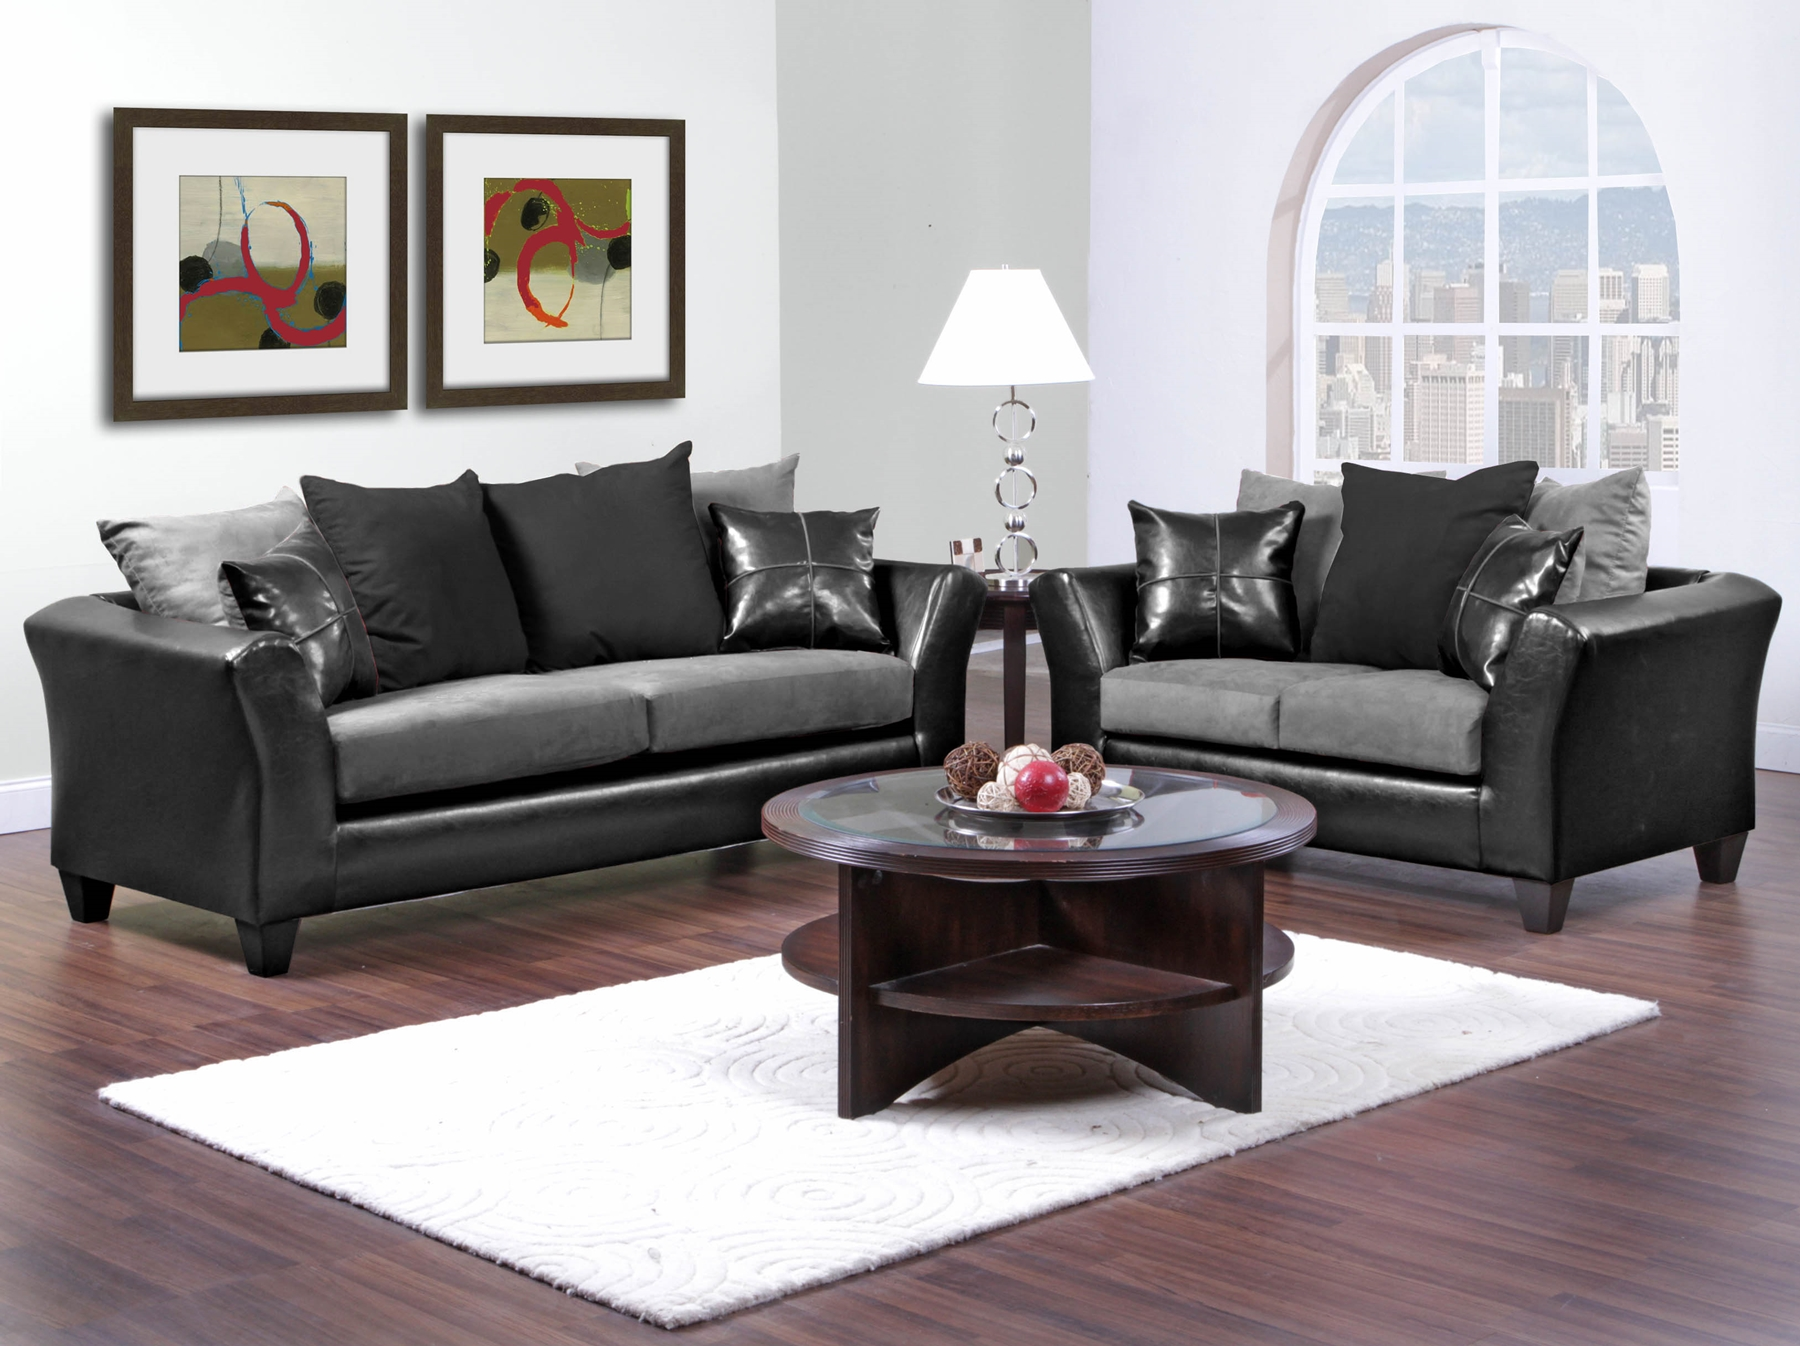 Galleria Furniture Discounted Furniture In Dallas Fort Worth